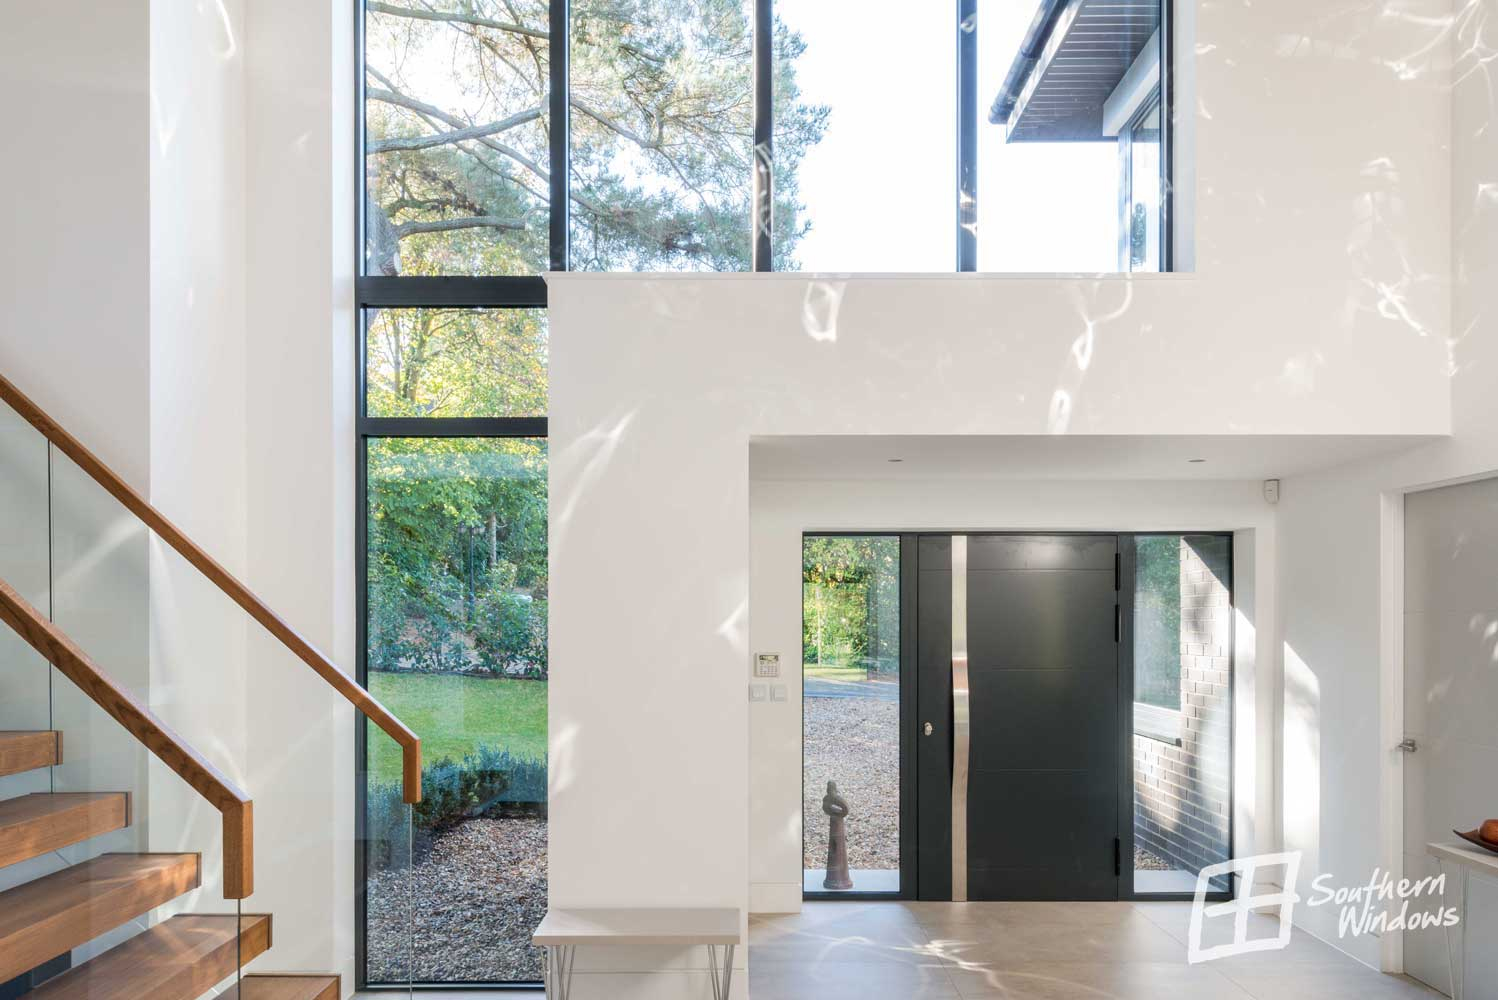 Double height glazing and entrance door with sidelights from Southern Windows